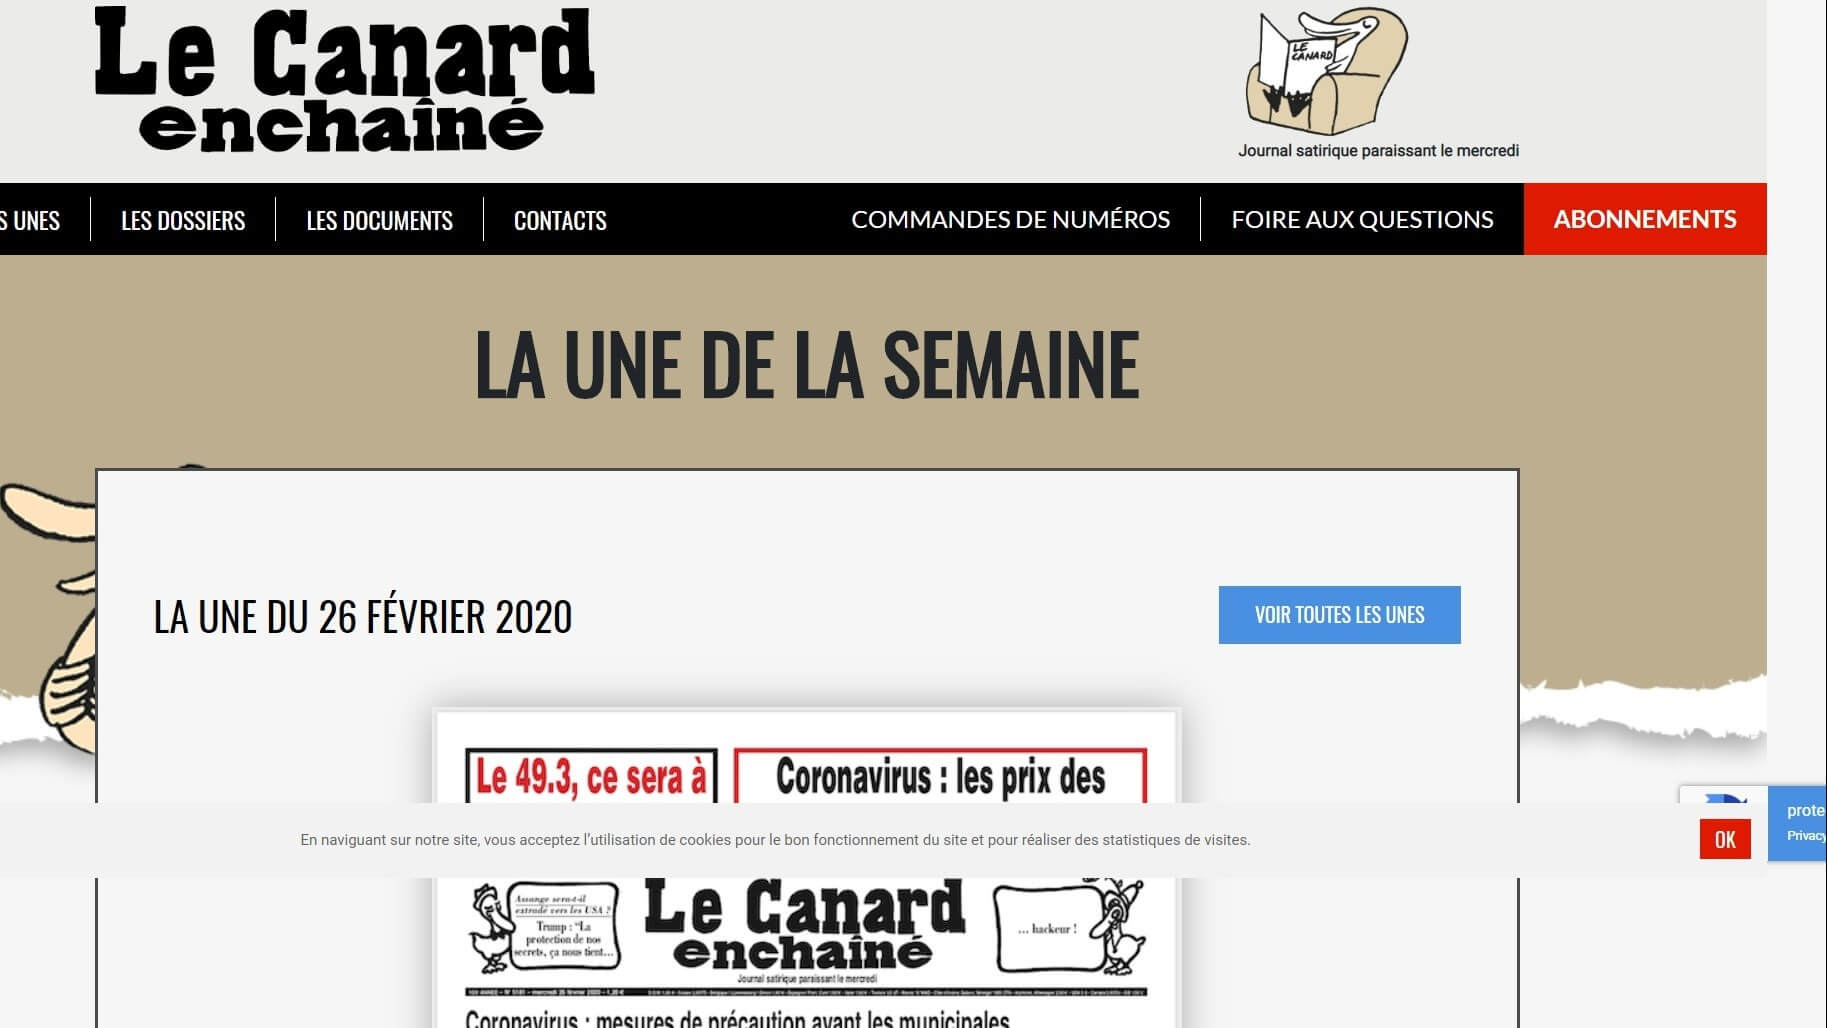 france newspapers 9 Le Canard enchaine website